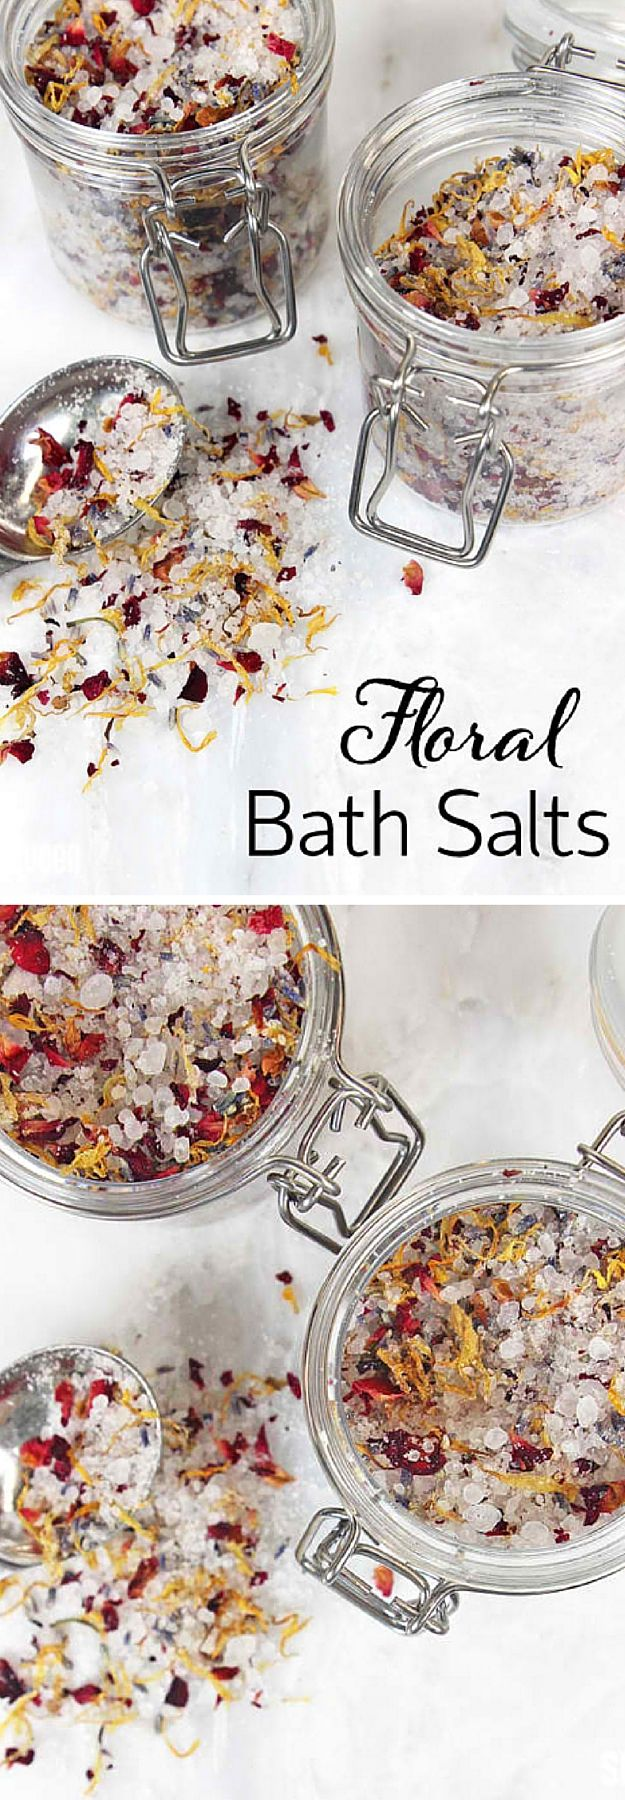 Floral Bath Salts|DIY Bath Salts